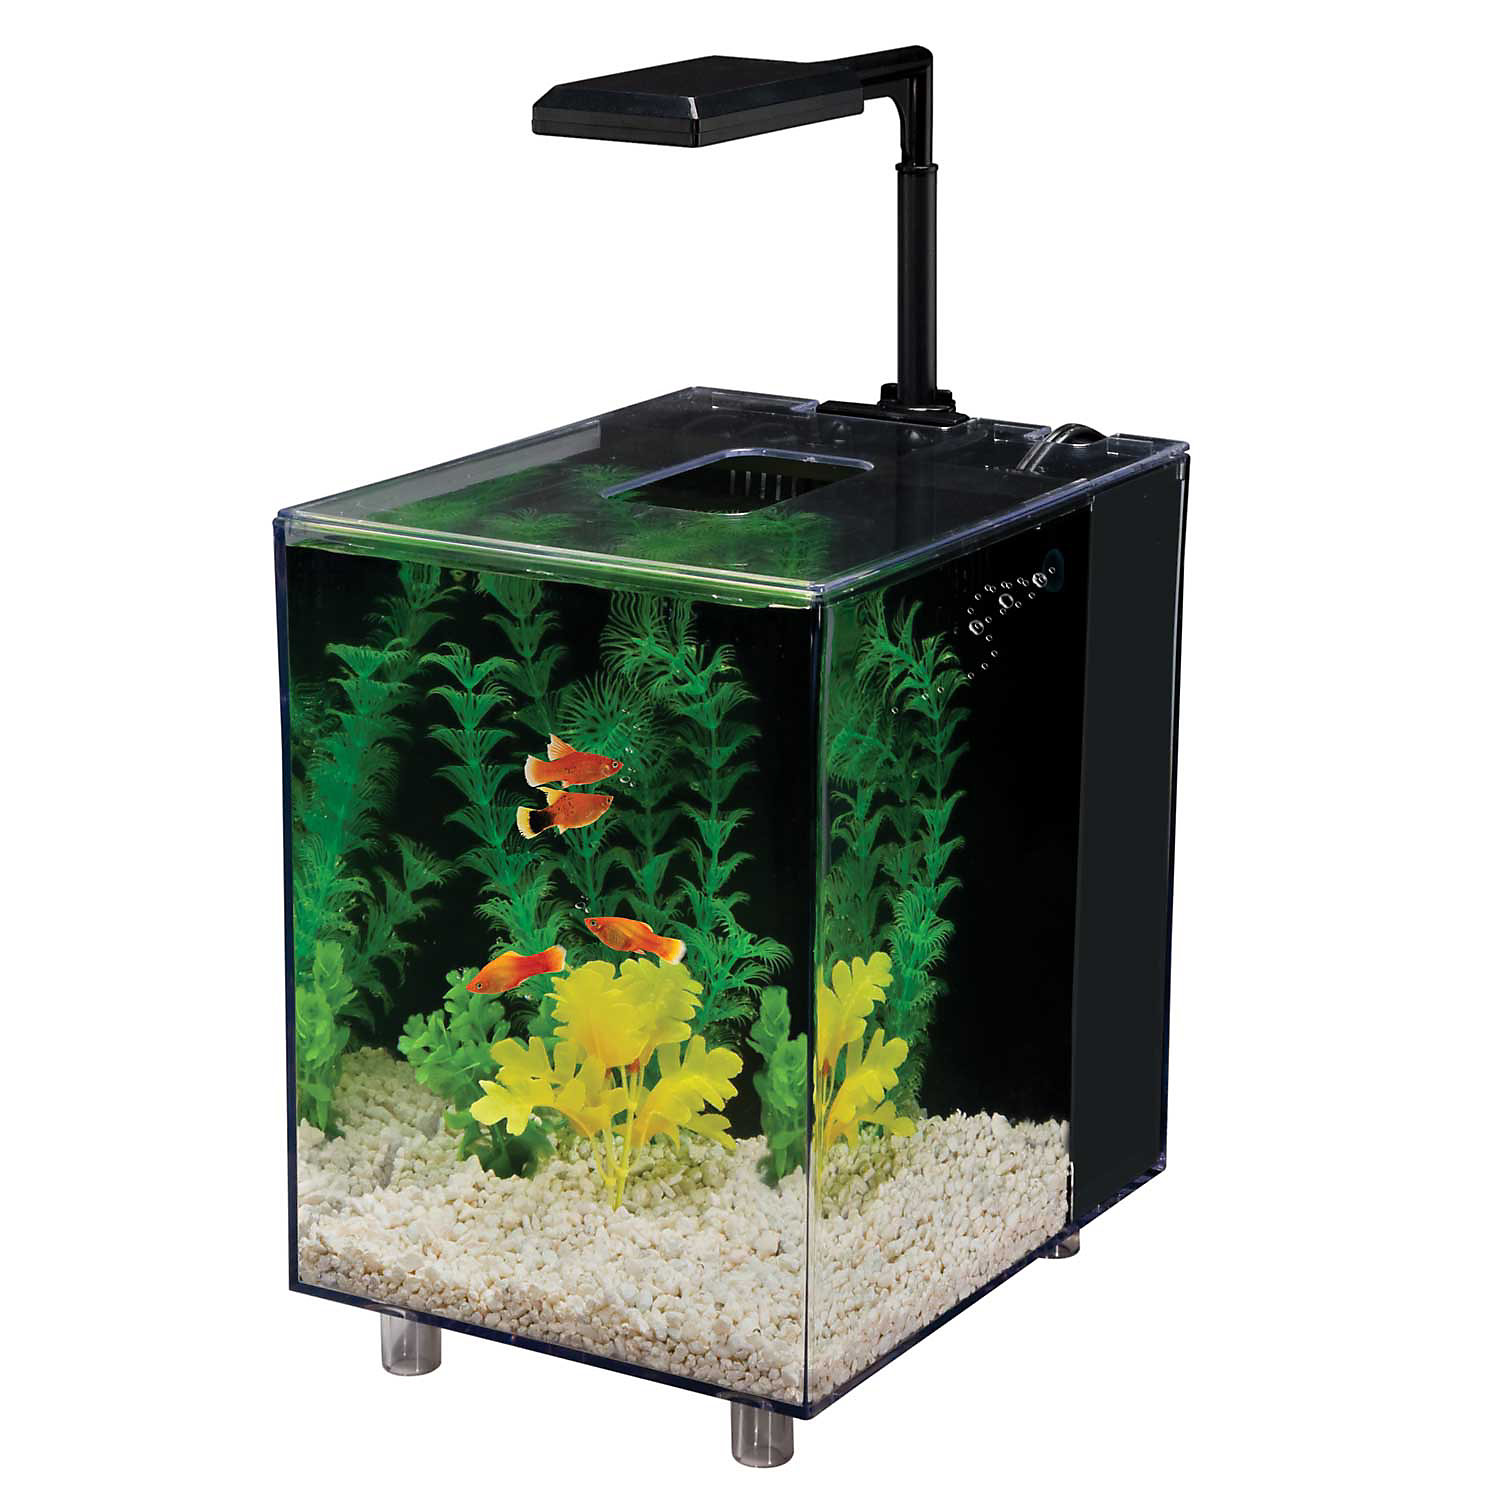 Penn Plax Prism Nano Aquarium Kit In Black 2 Gallons